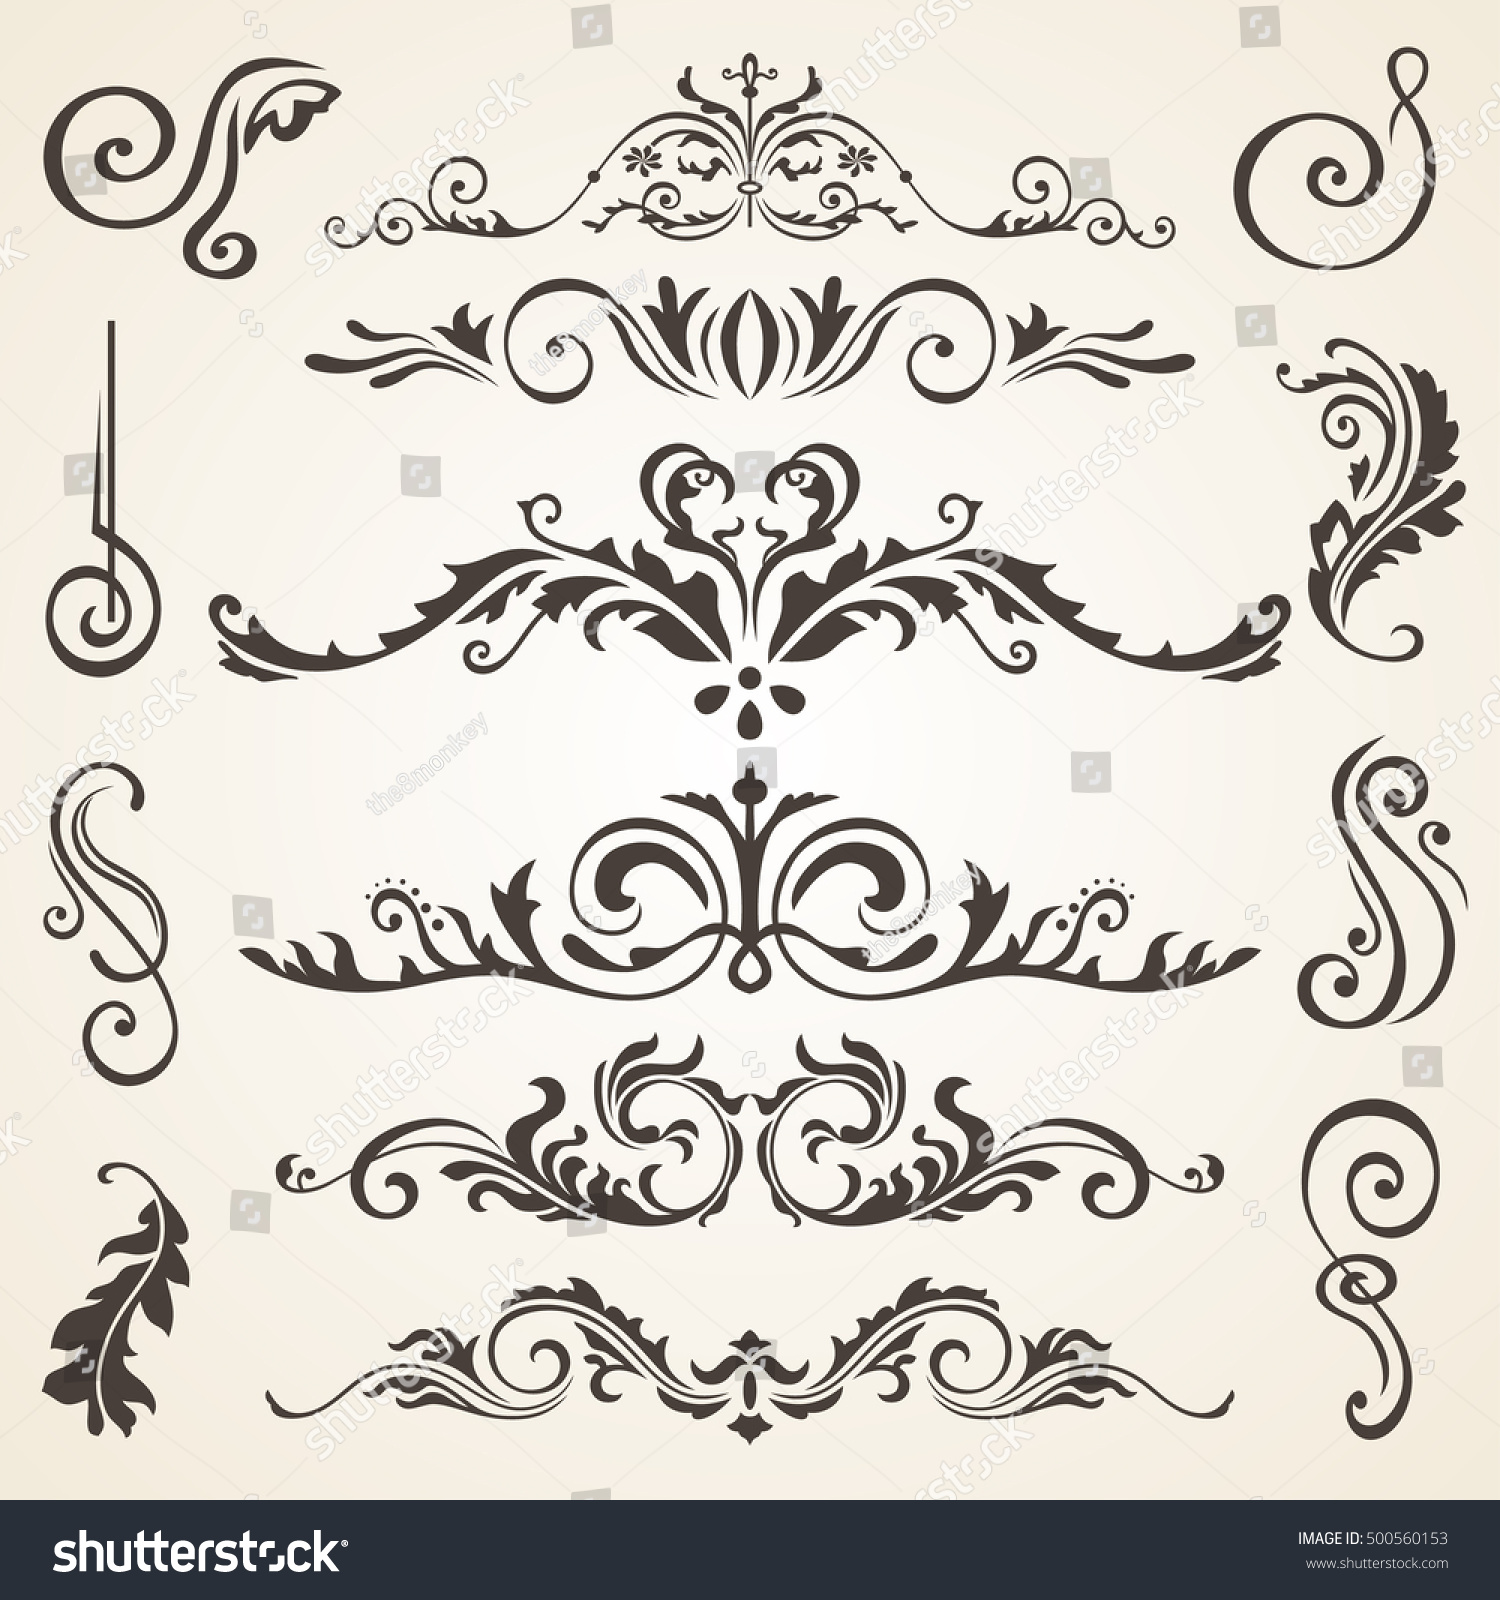 Victorian Design Elements calligraphic design elements page decoration vector stock vector